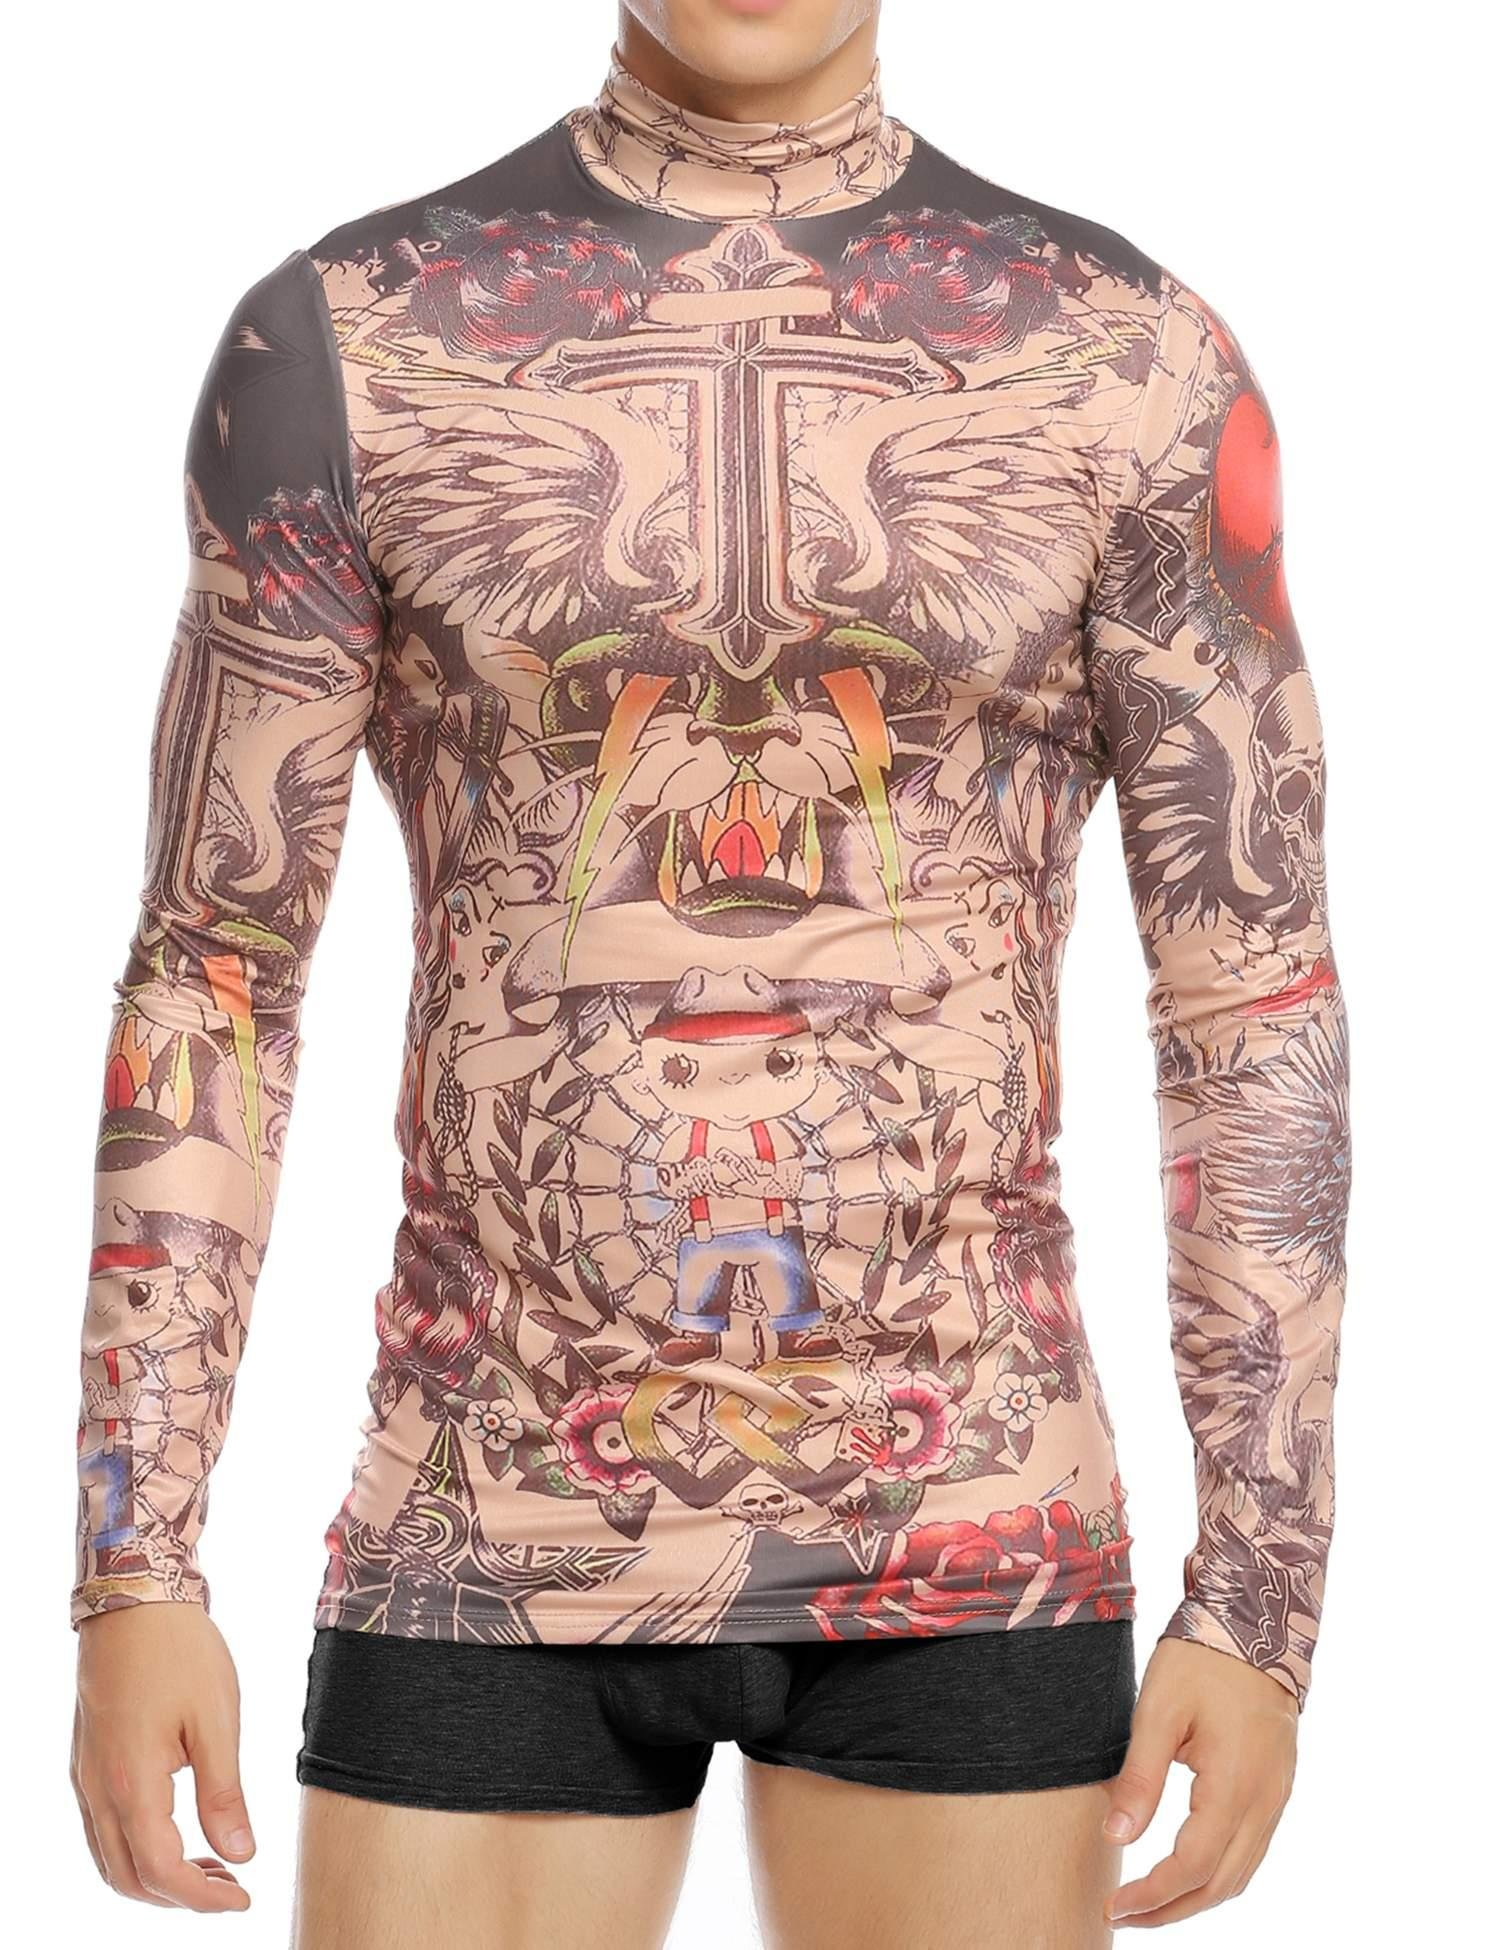 Goodfans Men's Fake Tattoo Tribal Inspired Print Elastic Long Sleeve T-Shirt Tops Clubwear